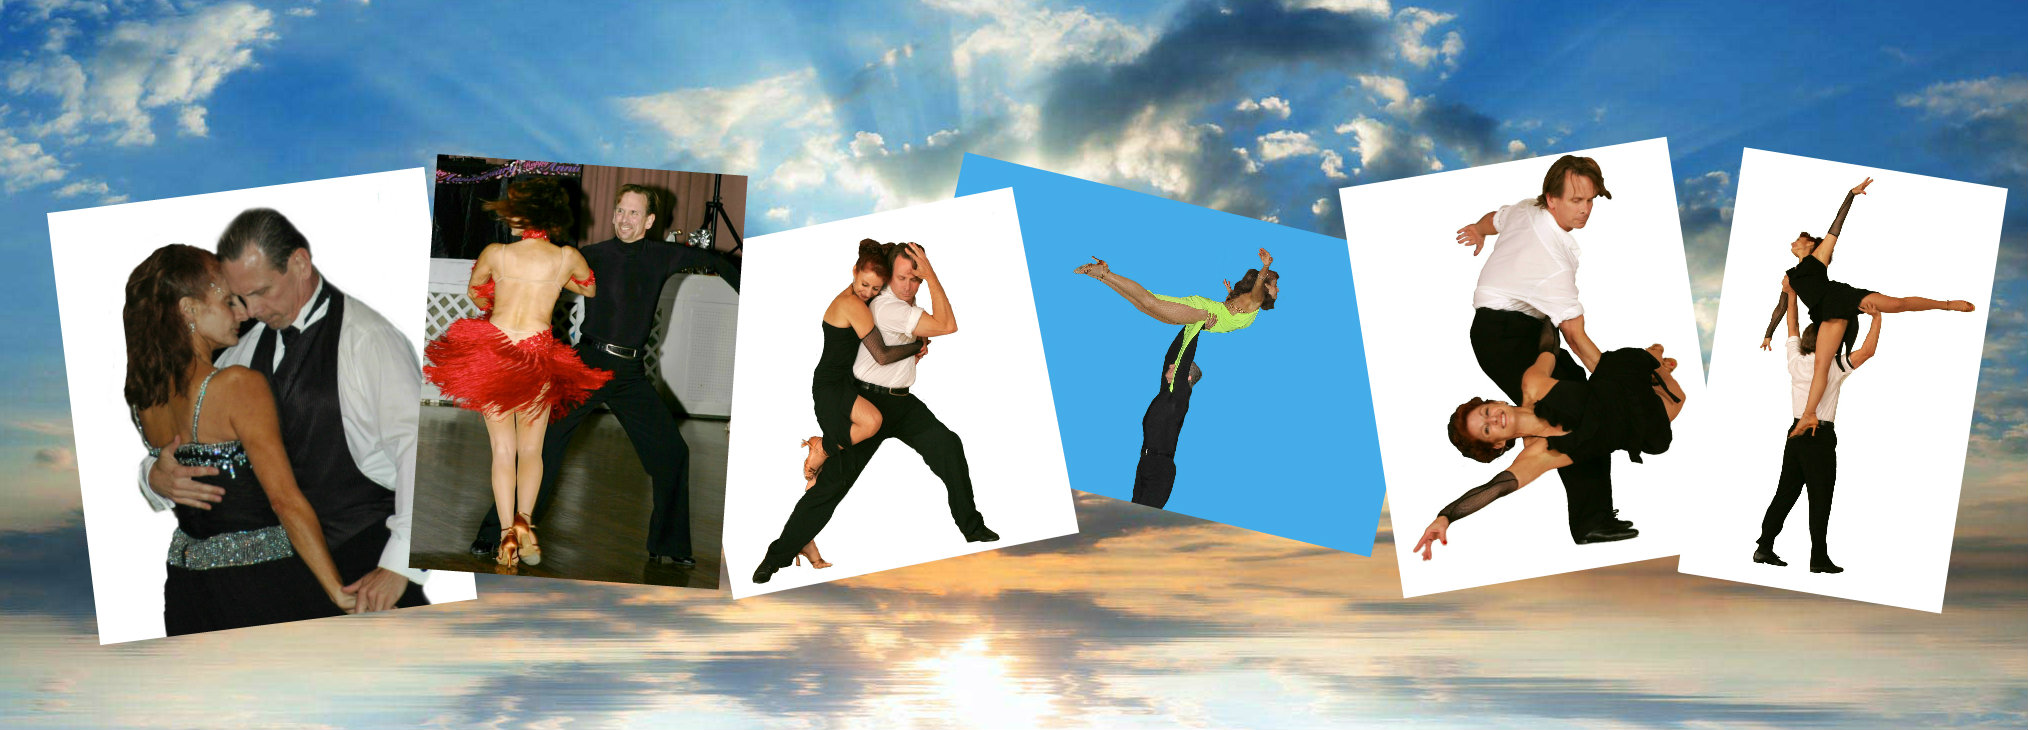 Best salsa, tango, lindy, Ballroom latin entertainers contact